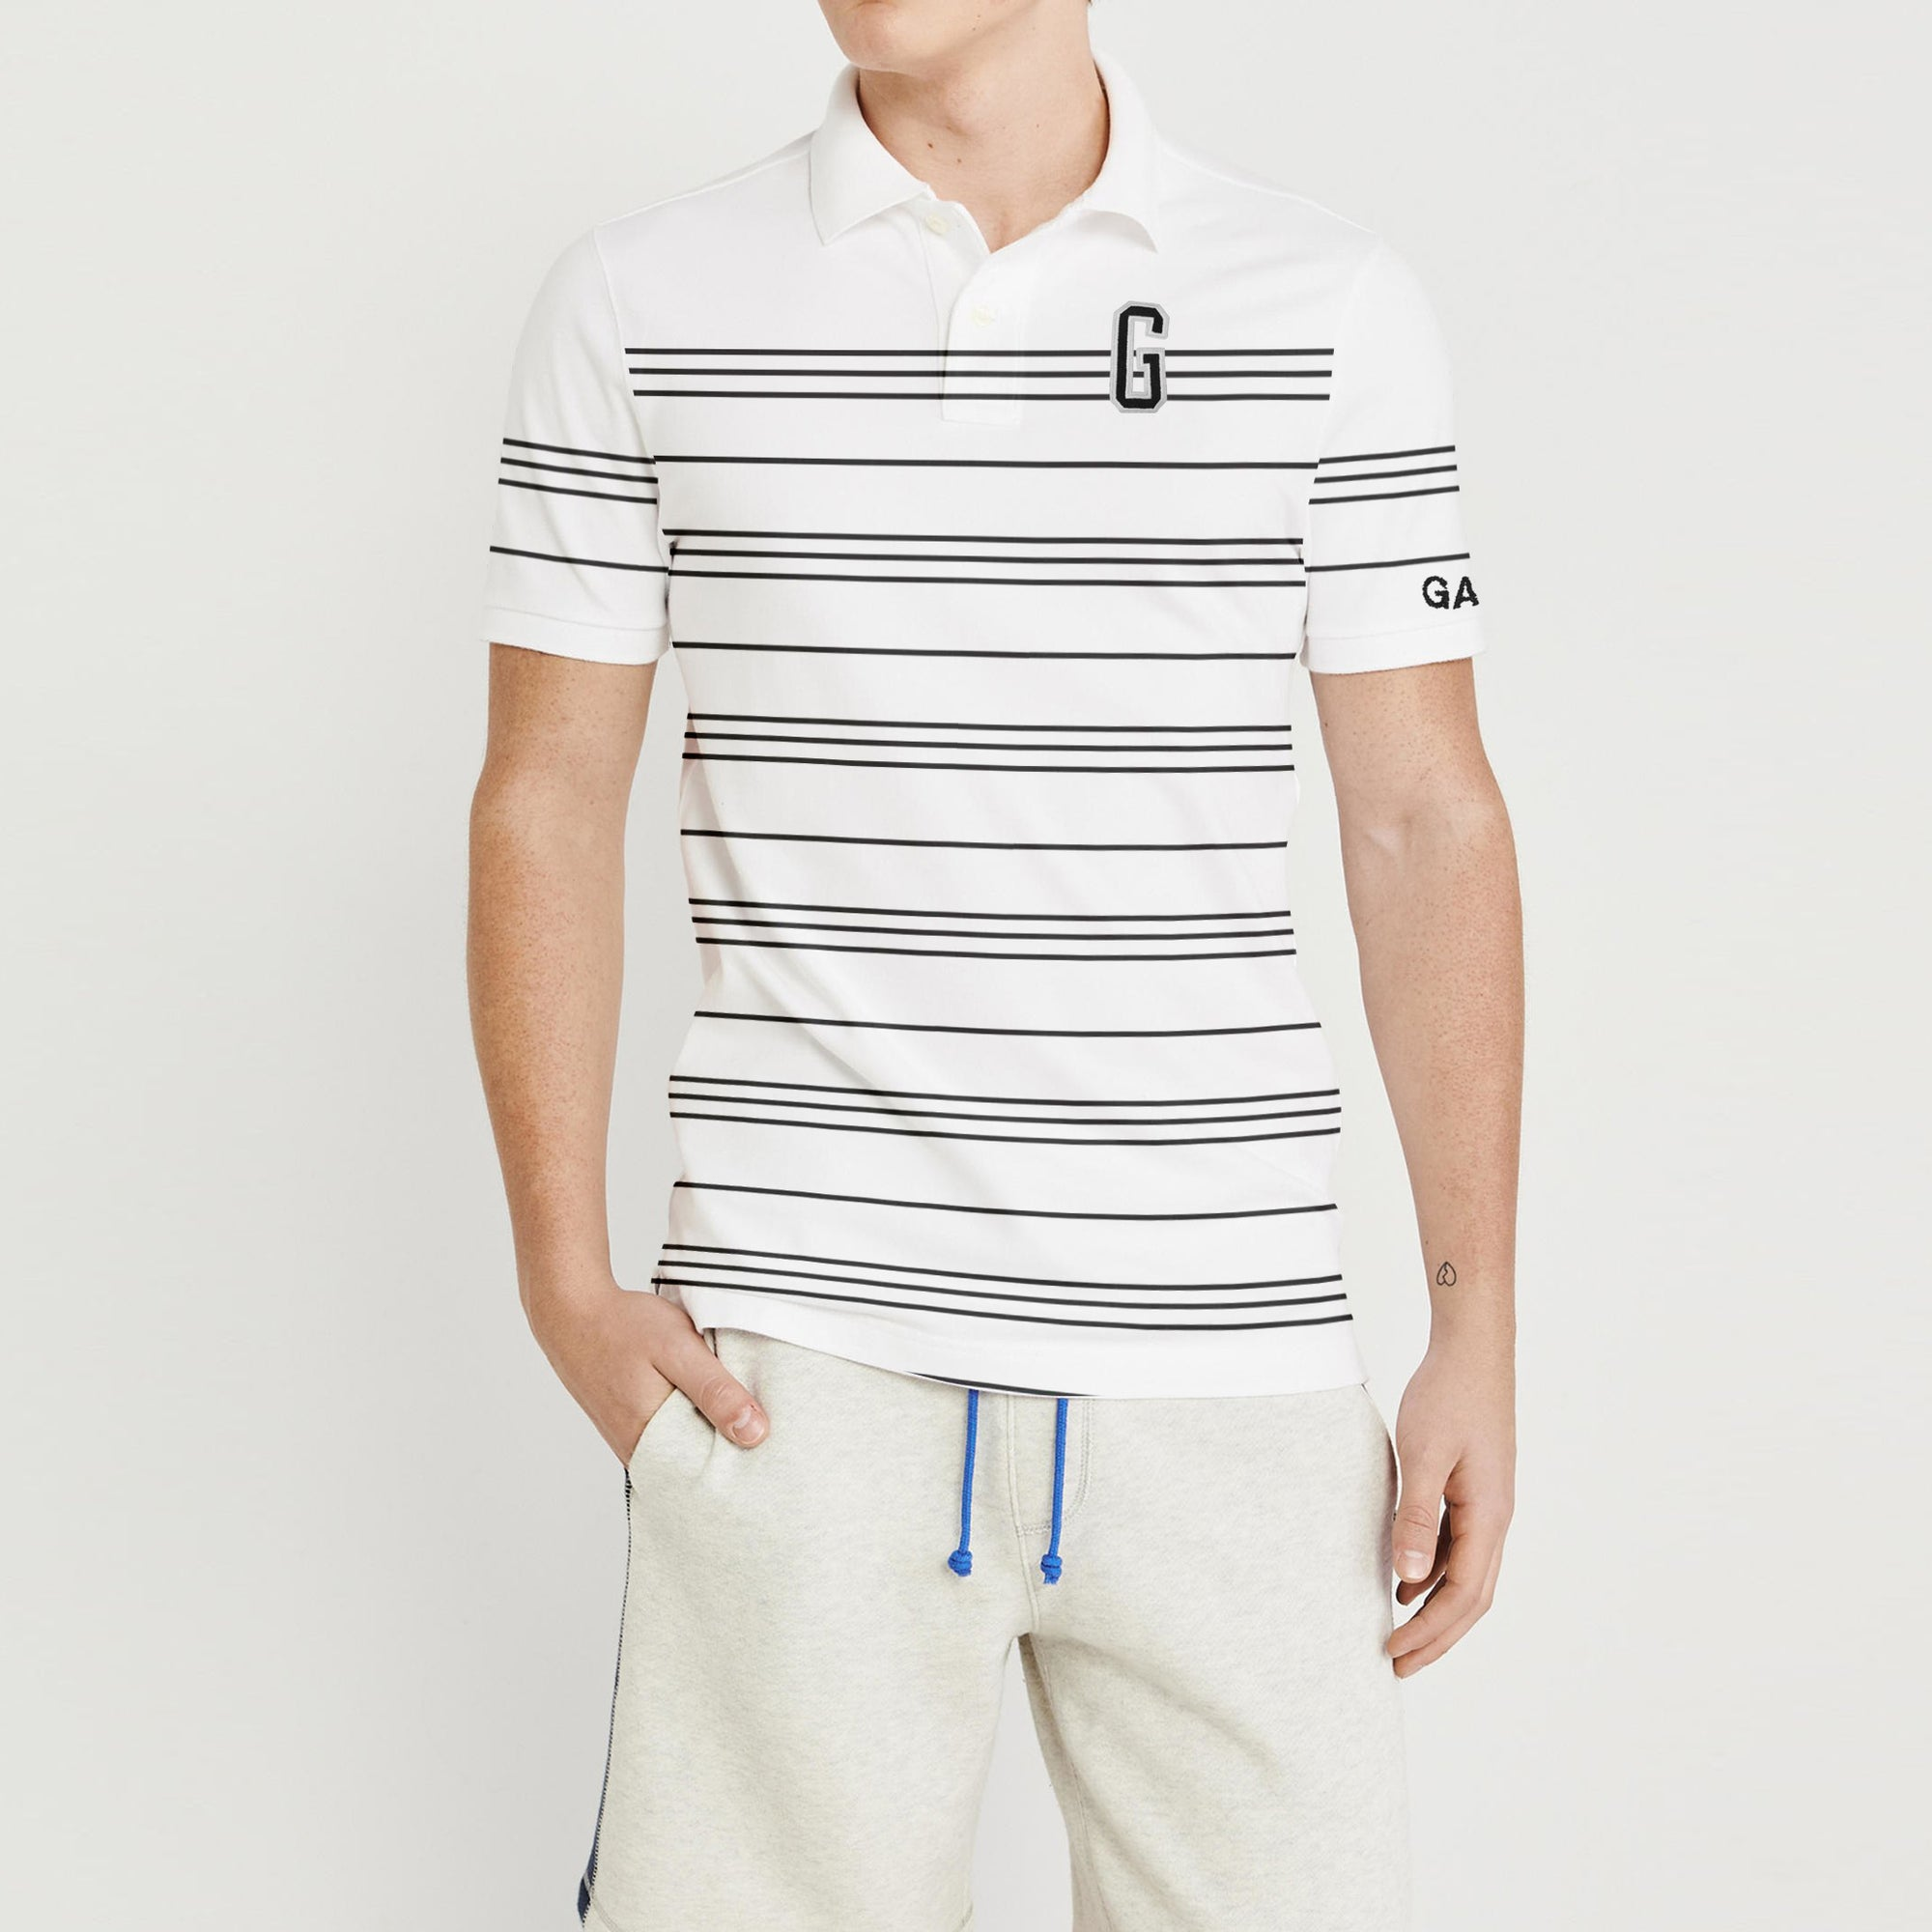 GAP Short Sleeve P.Q Polo Shirt For Men-Off White & Black Stripe-BE8616